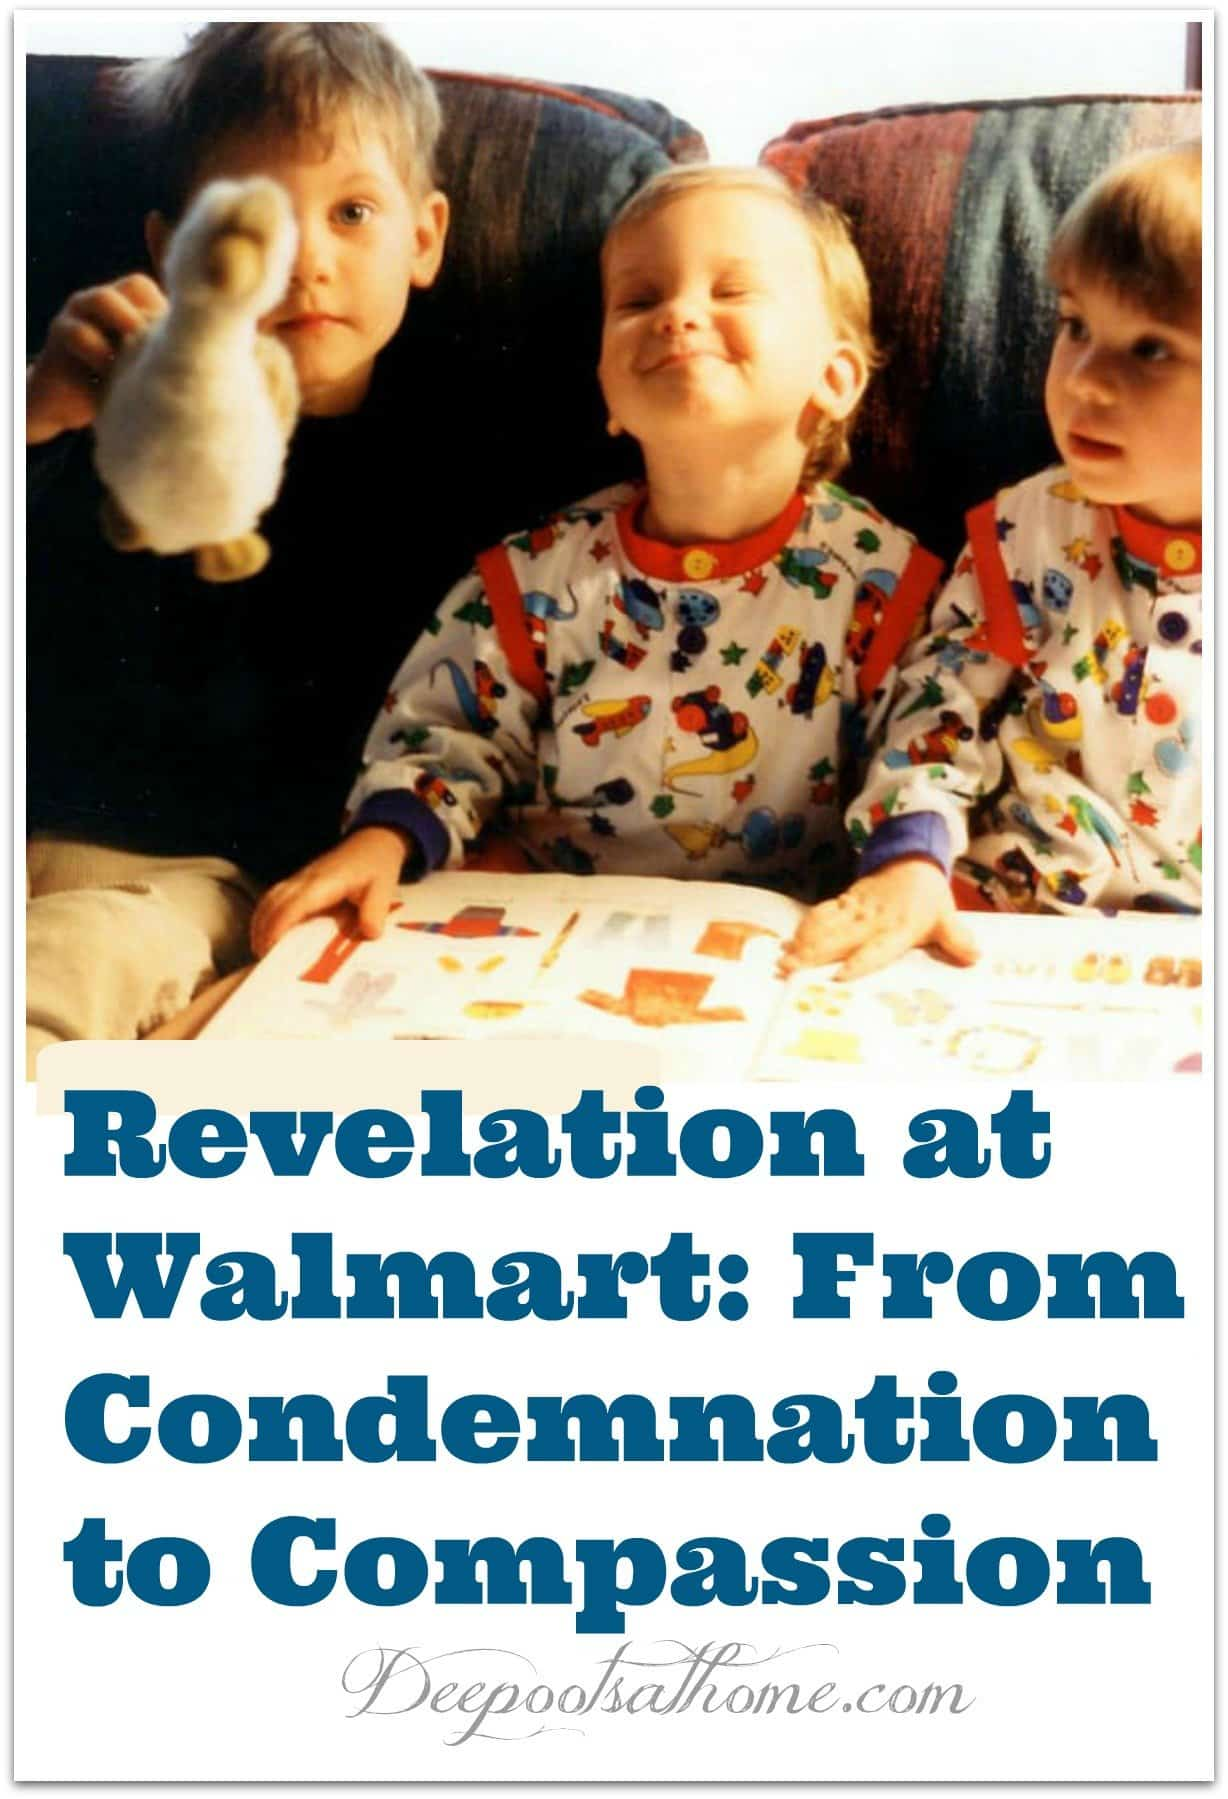 Revelation at Walmart: From Condemnation to Compassion. 3 children